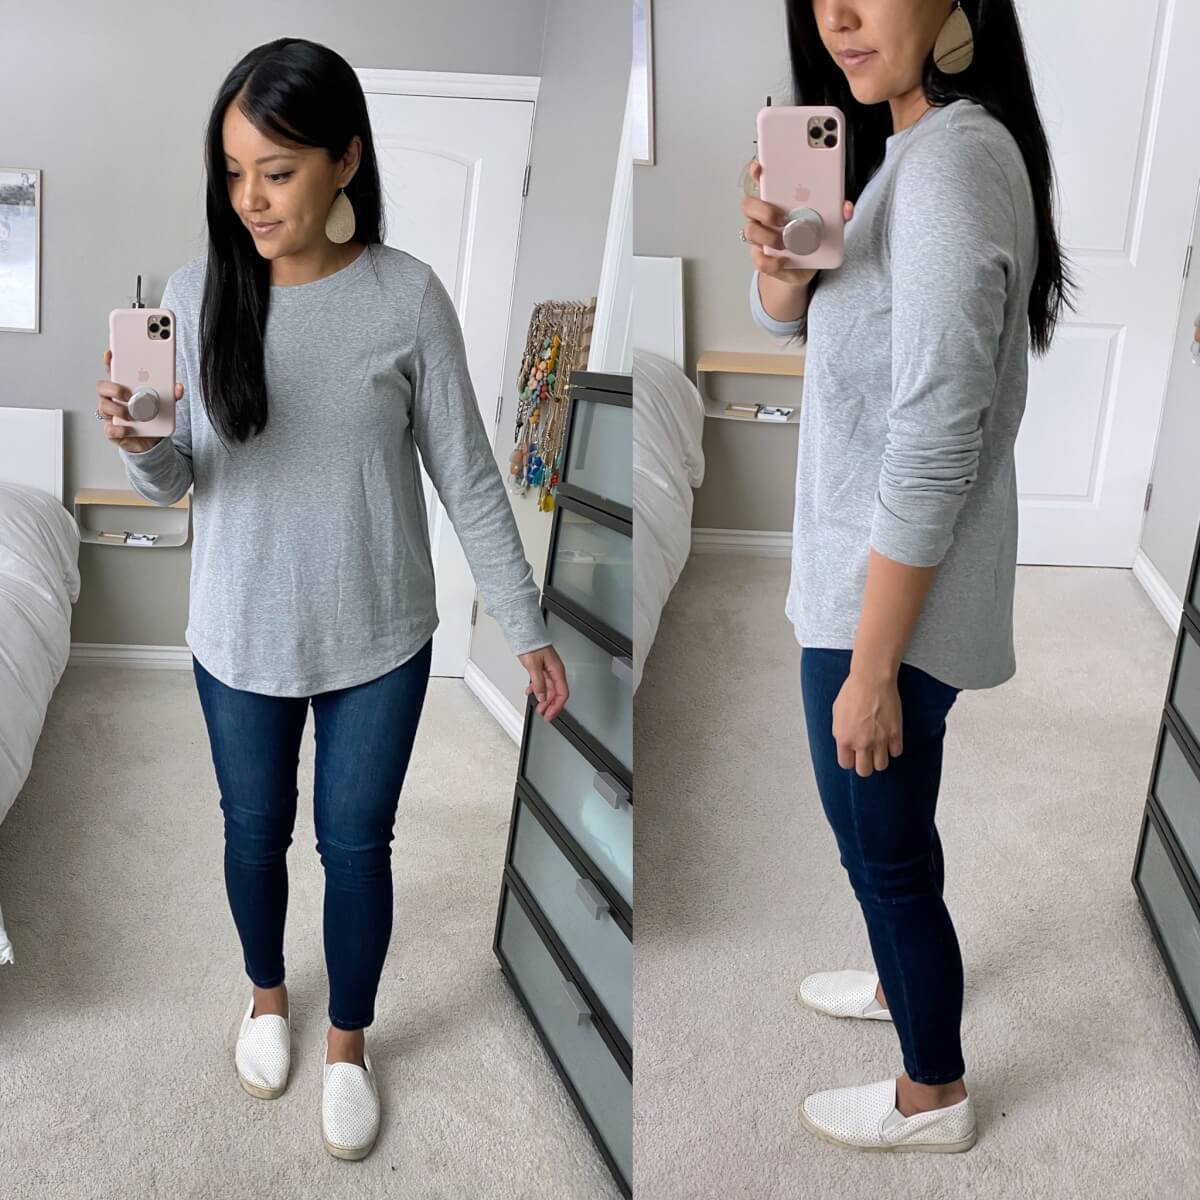 Casual Jeans Outfit: skinny jeans + grey tunic top + metallic leather earrings + white slip-on sneakers